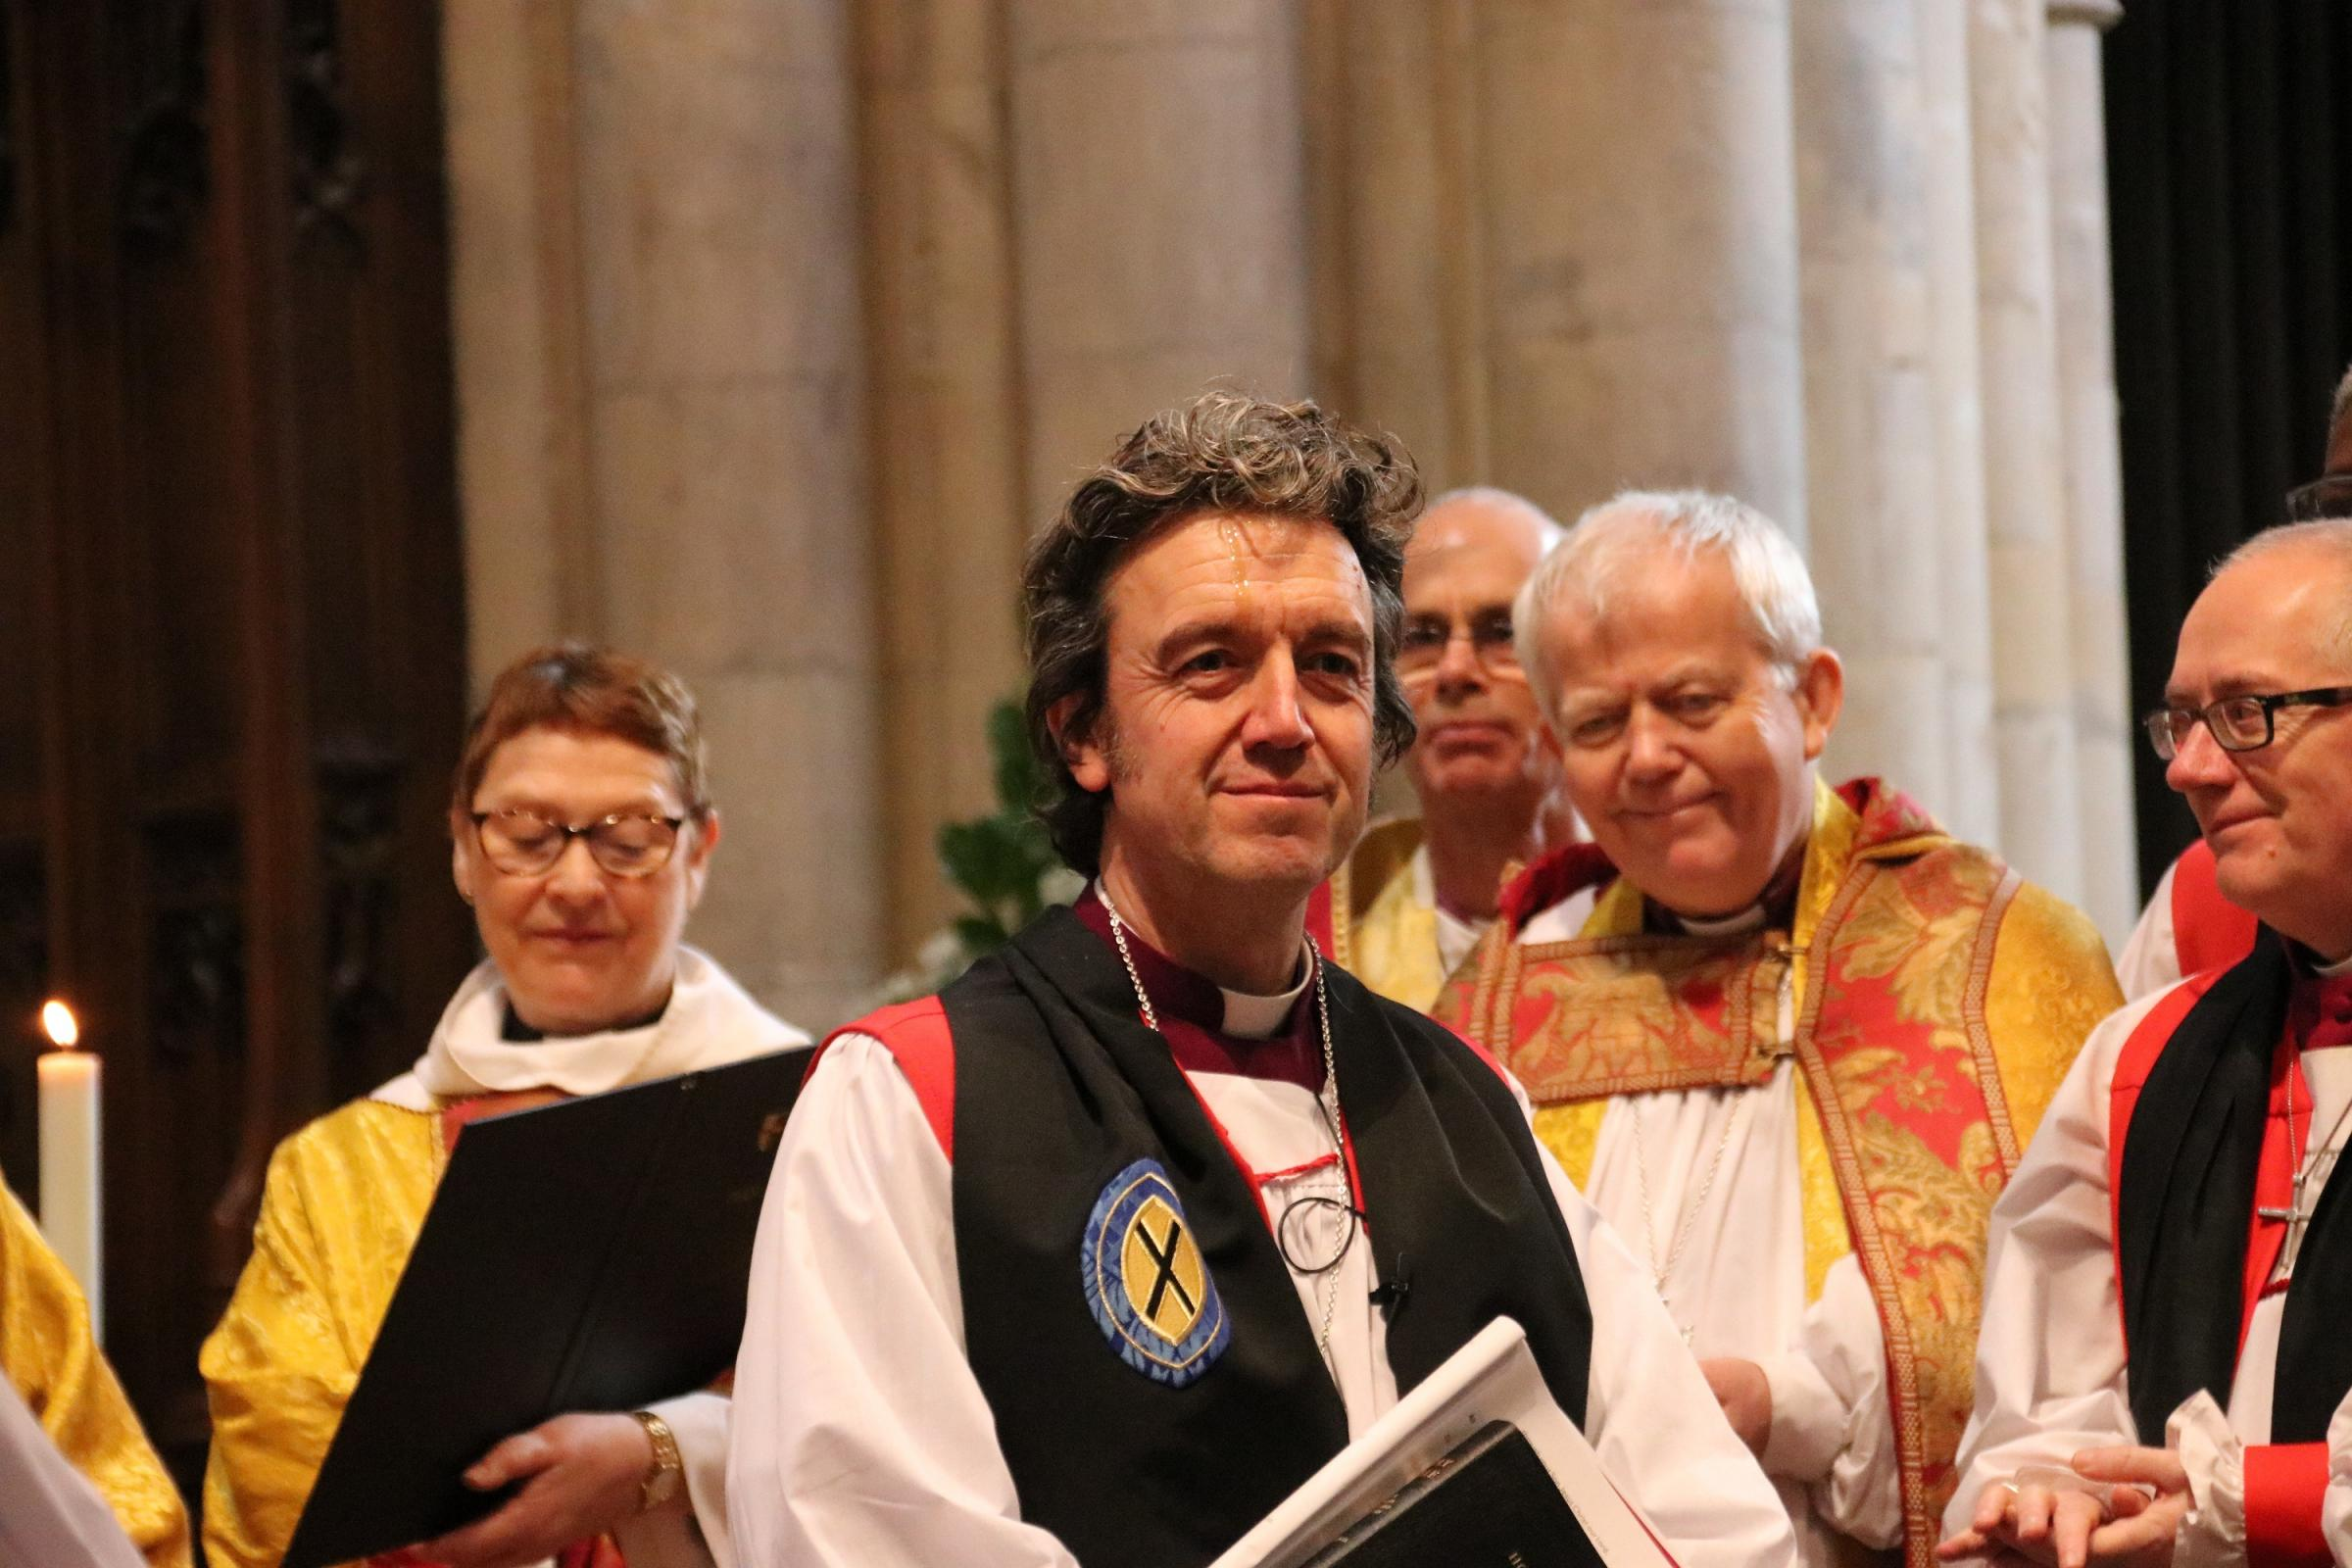 The Consecration of the Bishop of Ramsbury last month